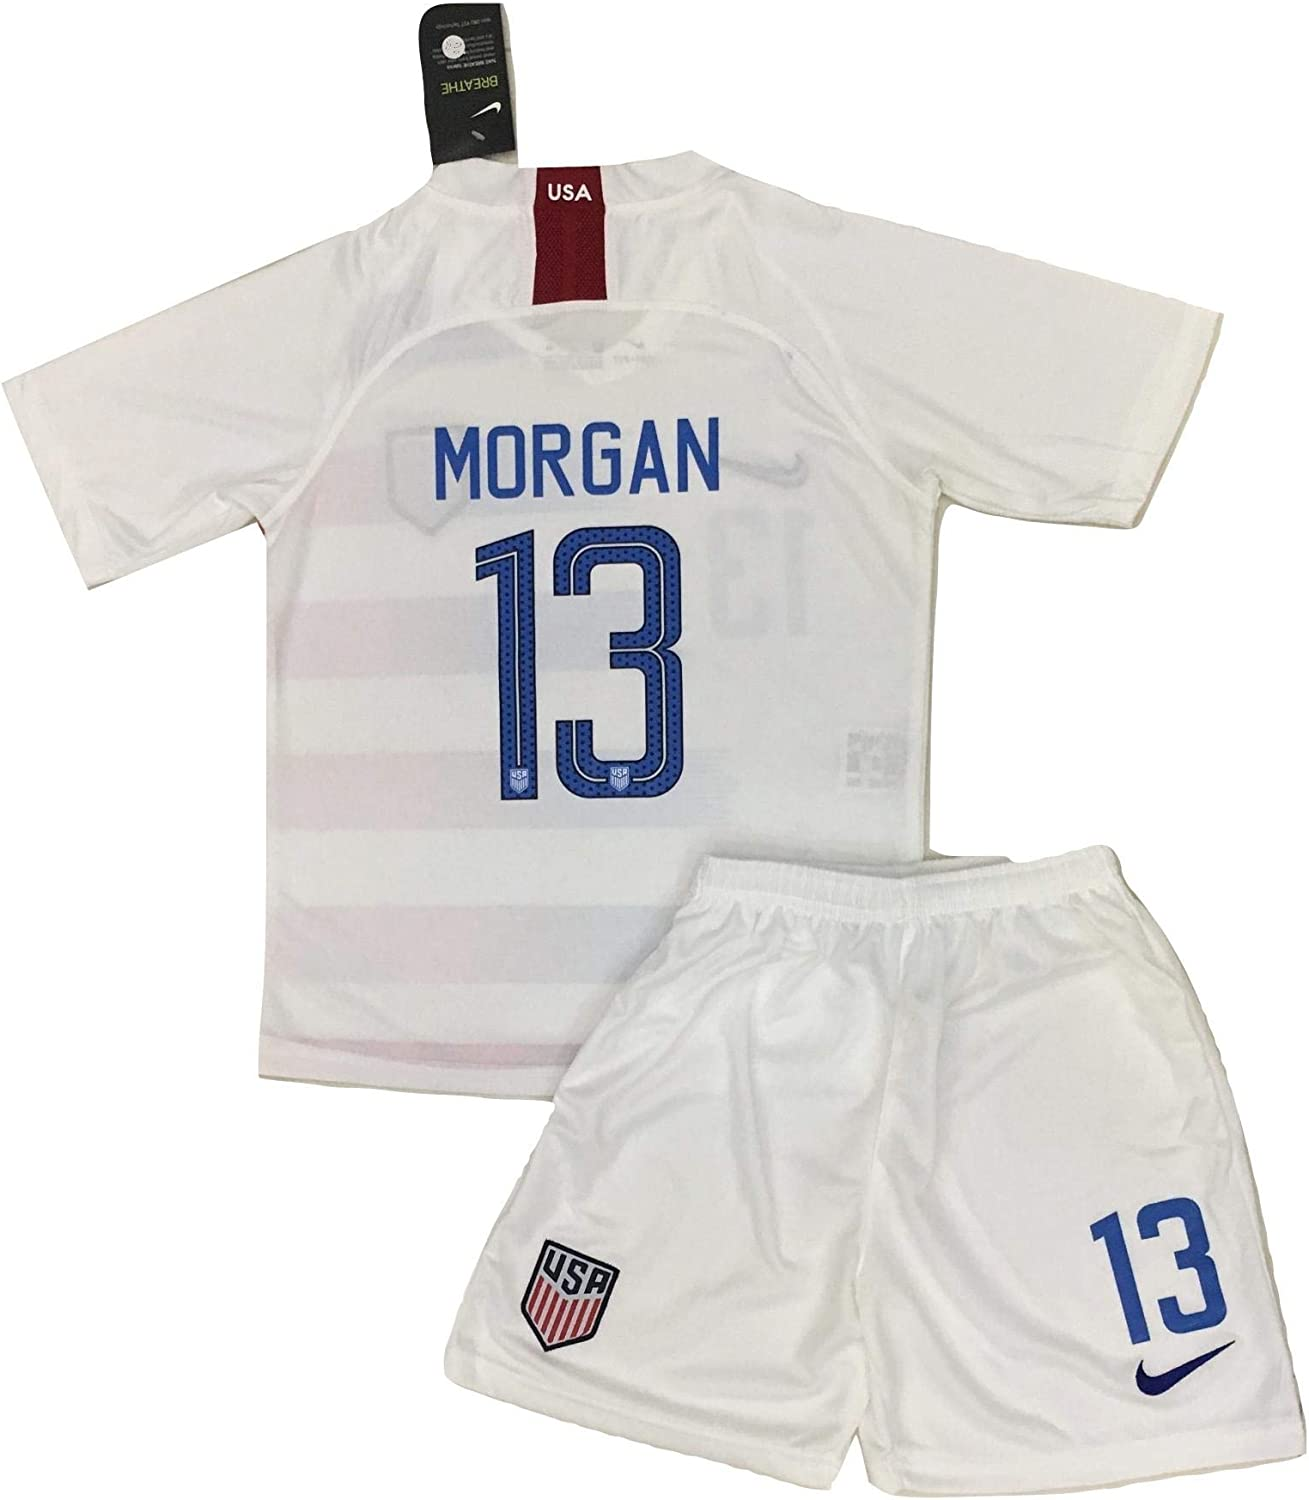 2019 Alex Morgan  13 USA National Team Home Jersey and Shorts for Kids Youths